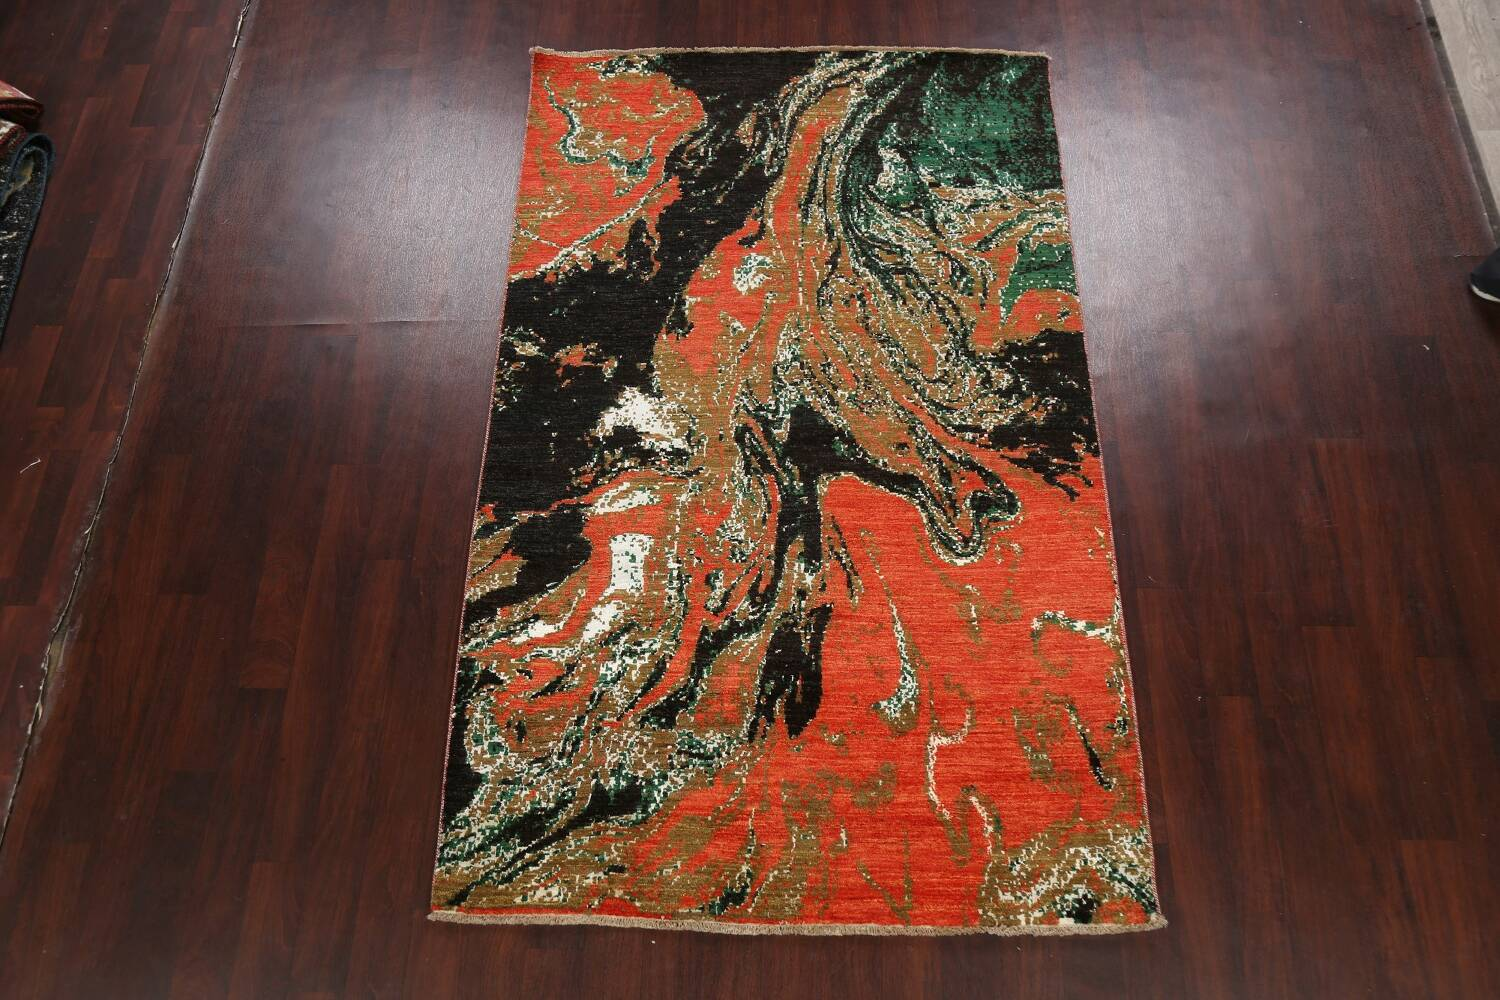 Artistic Modern Abstract Oriental Area Rug 5x8 image 2